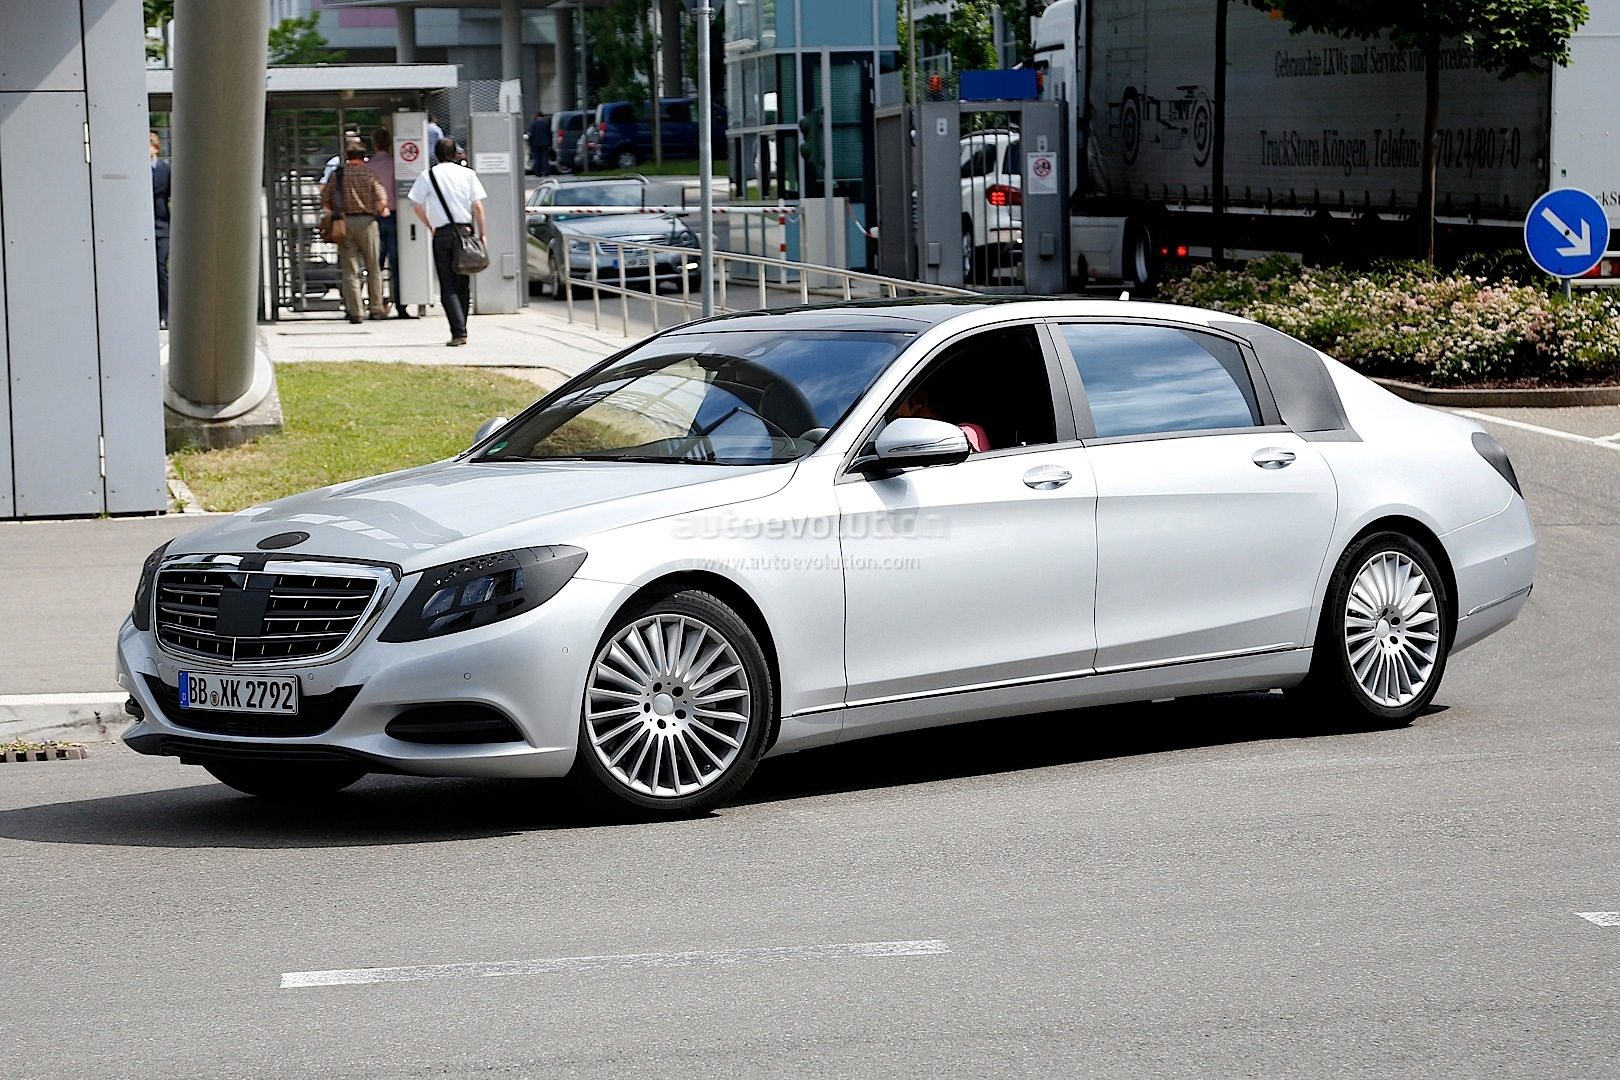 Spyshots 2015 mercedes s600 pullman with minimal camo for Mercedes benz s600 2015